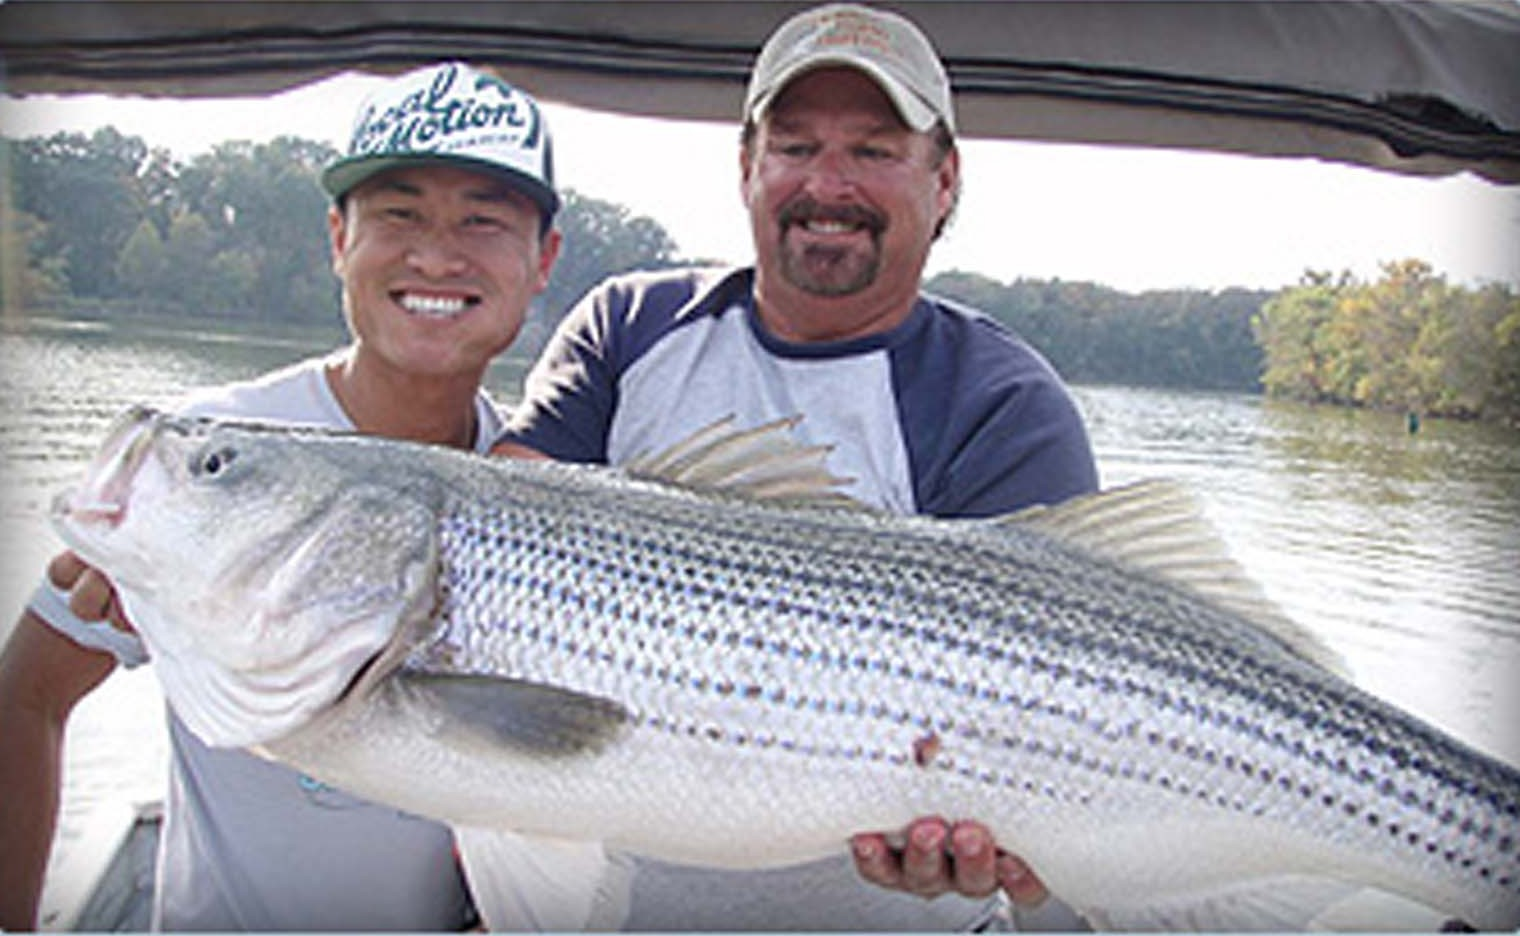 Cumberland river archives nashville fishing charters for Striper fishing lake cumberland